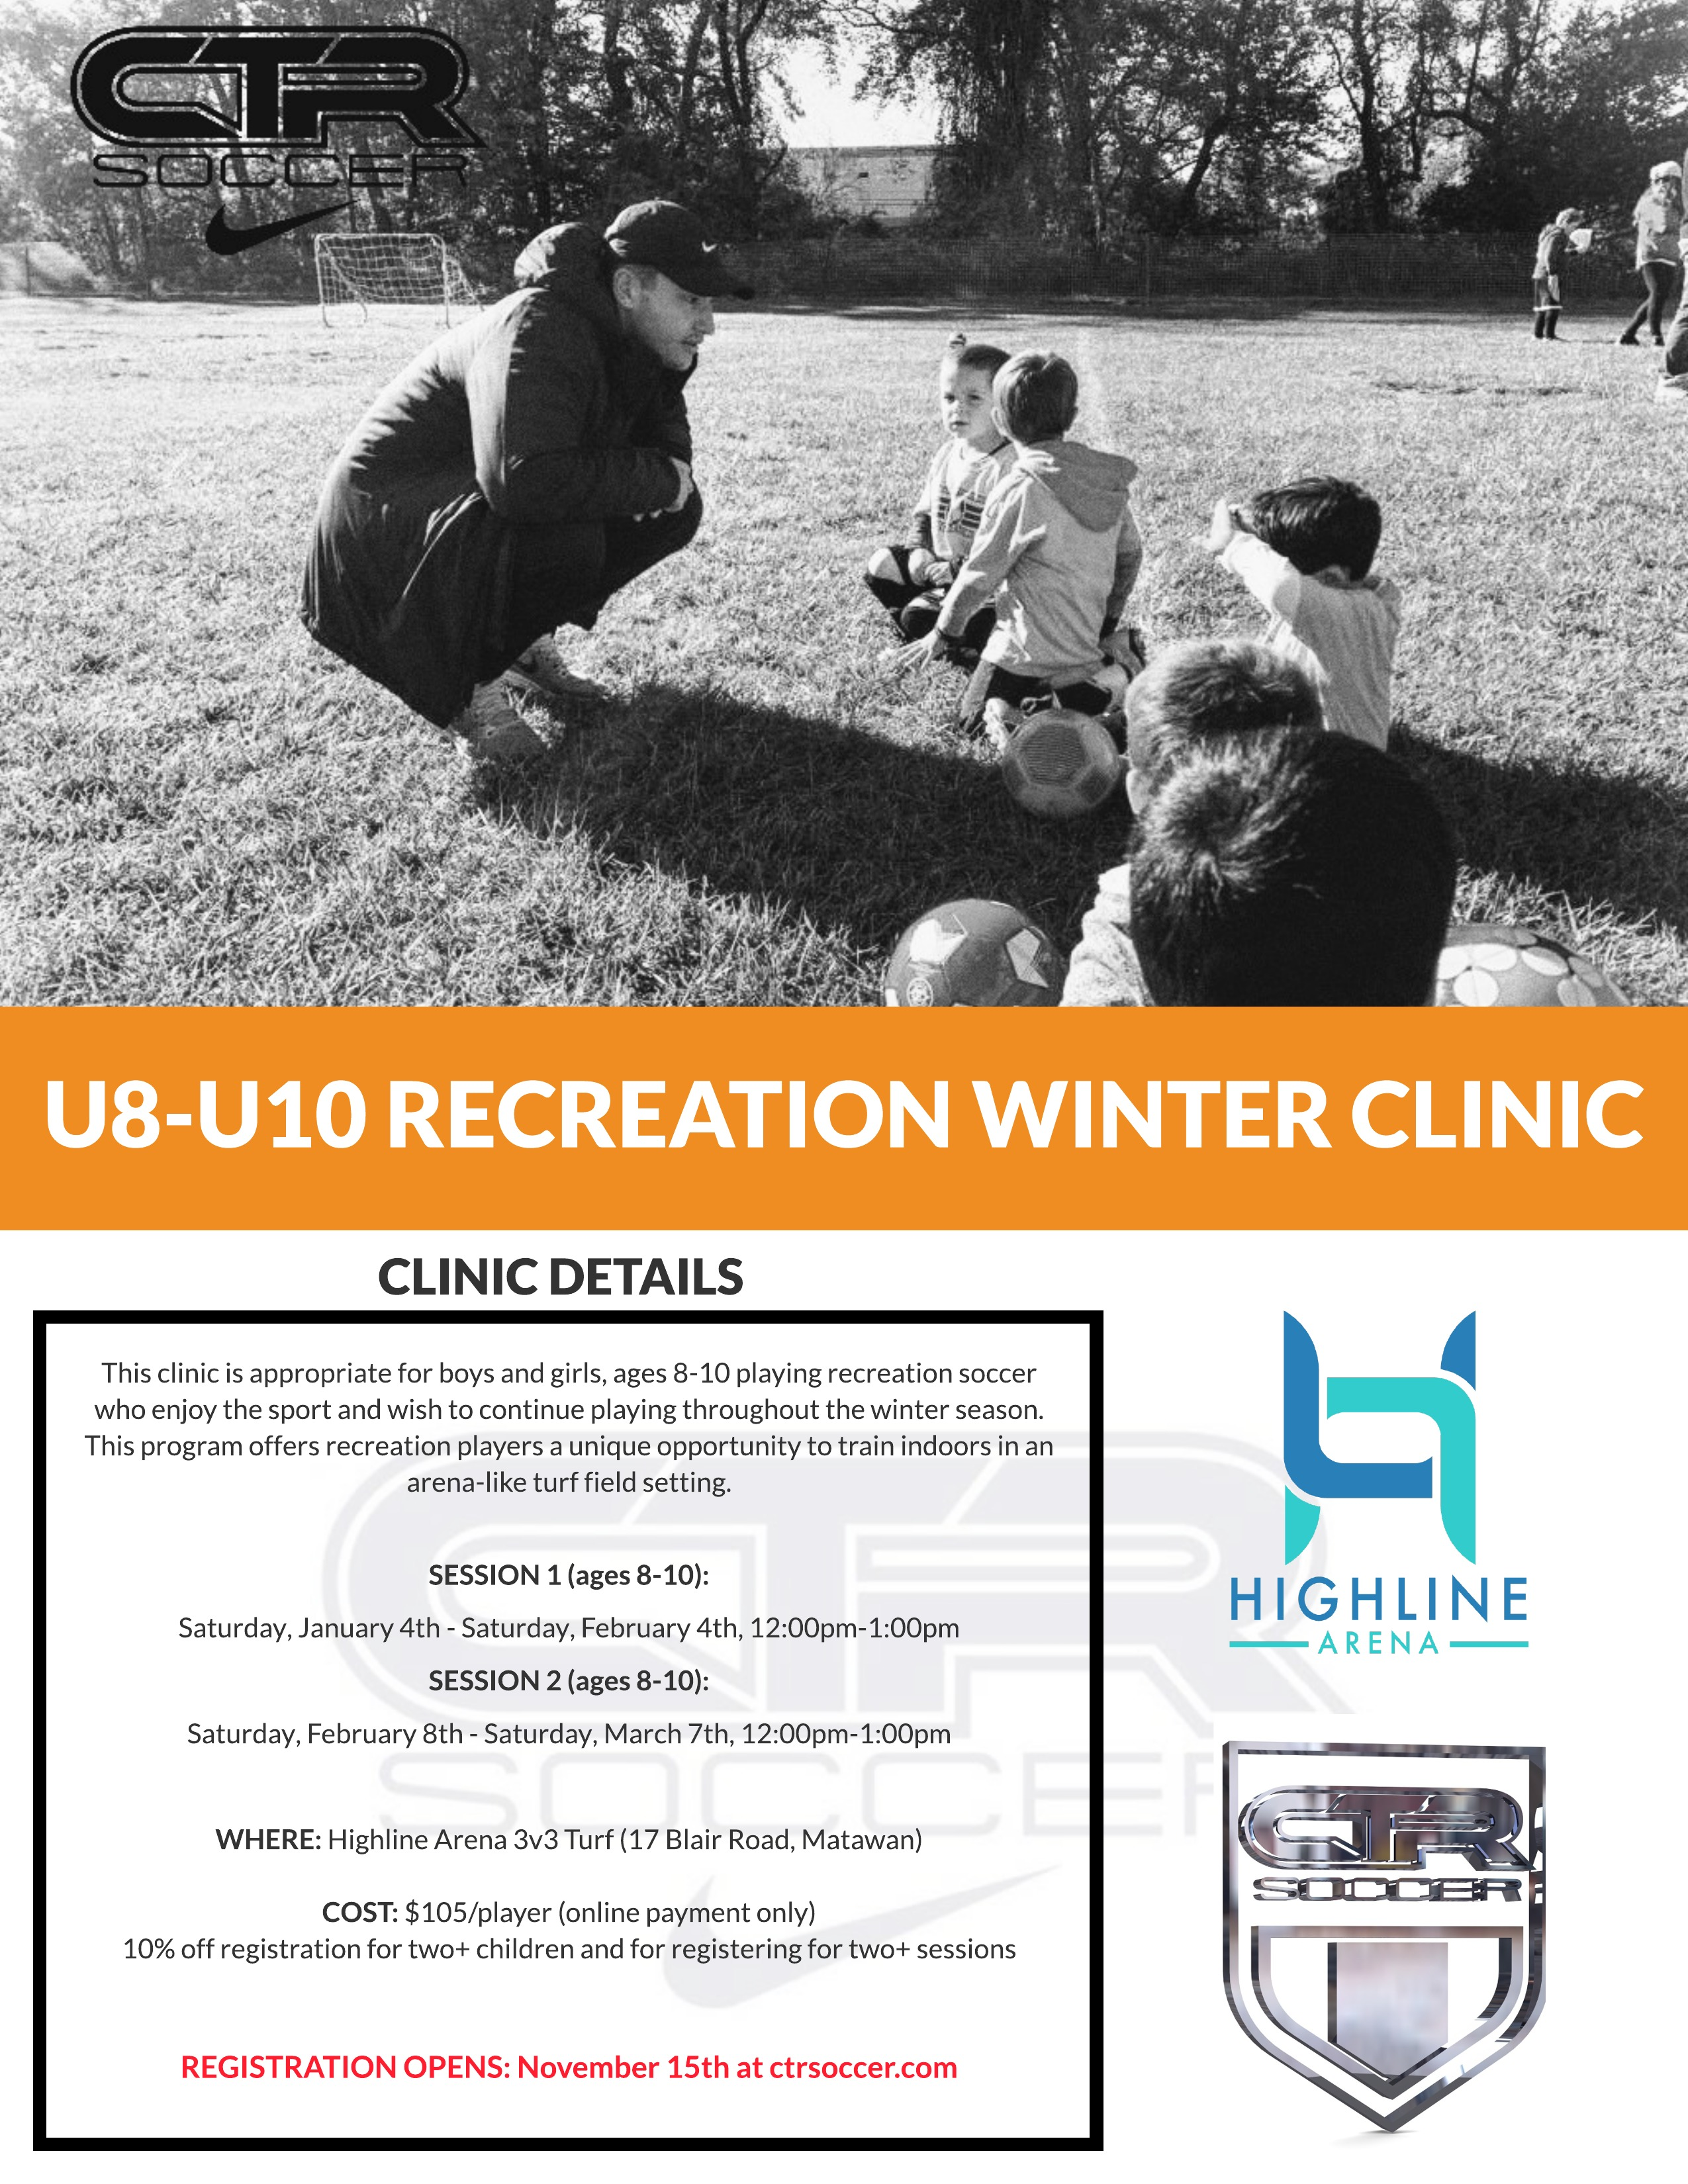 U8-U10 Recreation Winter Clinic